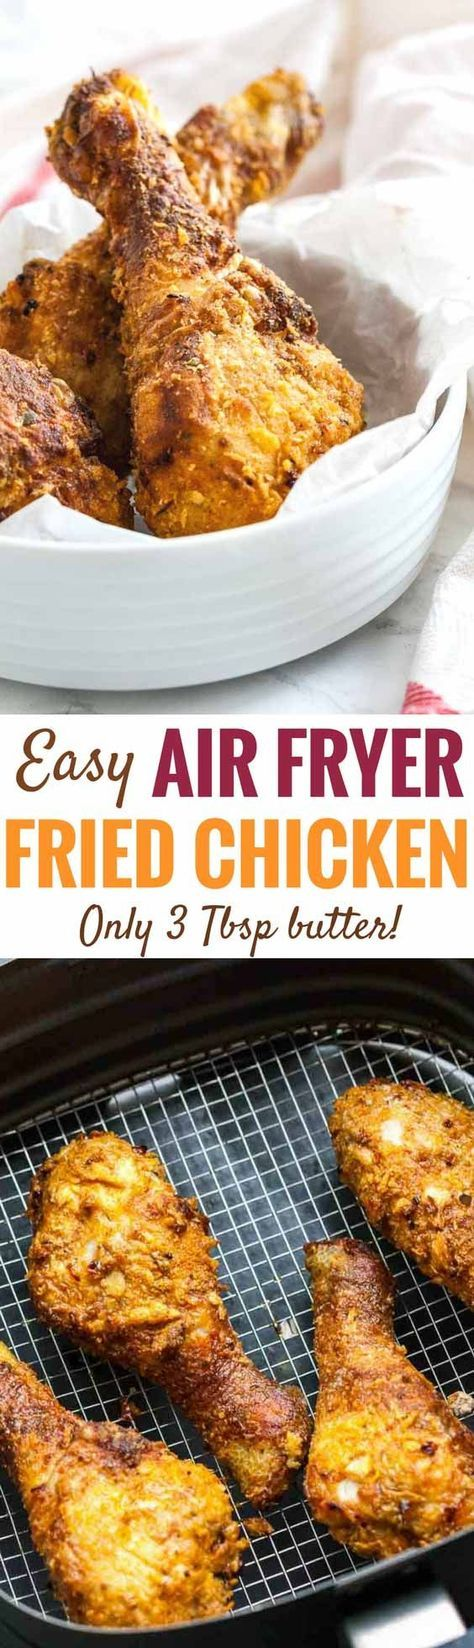 Juicy Air Fryer Chicken Drumsticks made with only 3 Tbsp